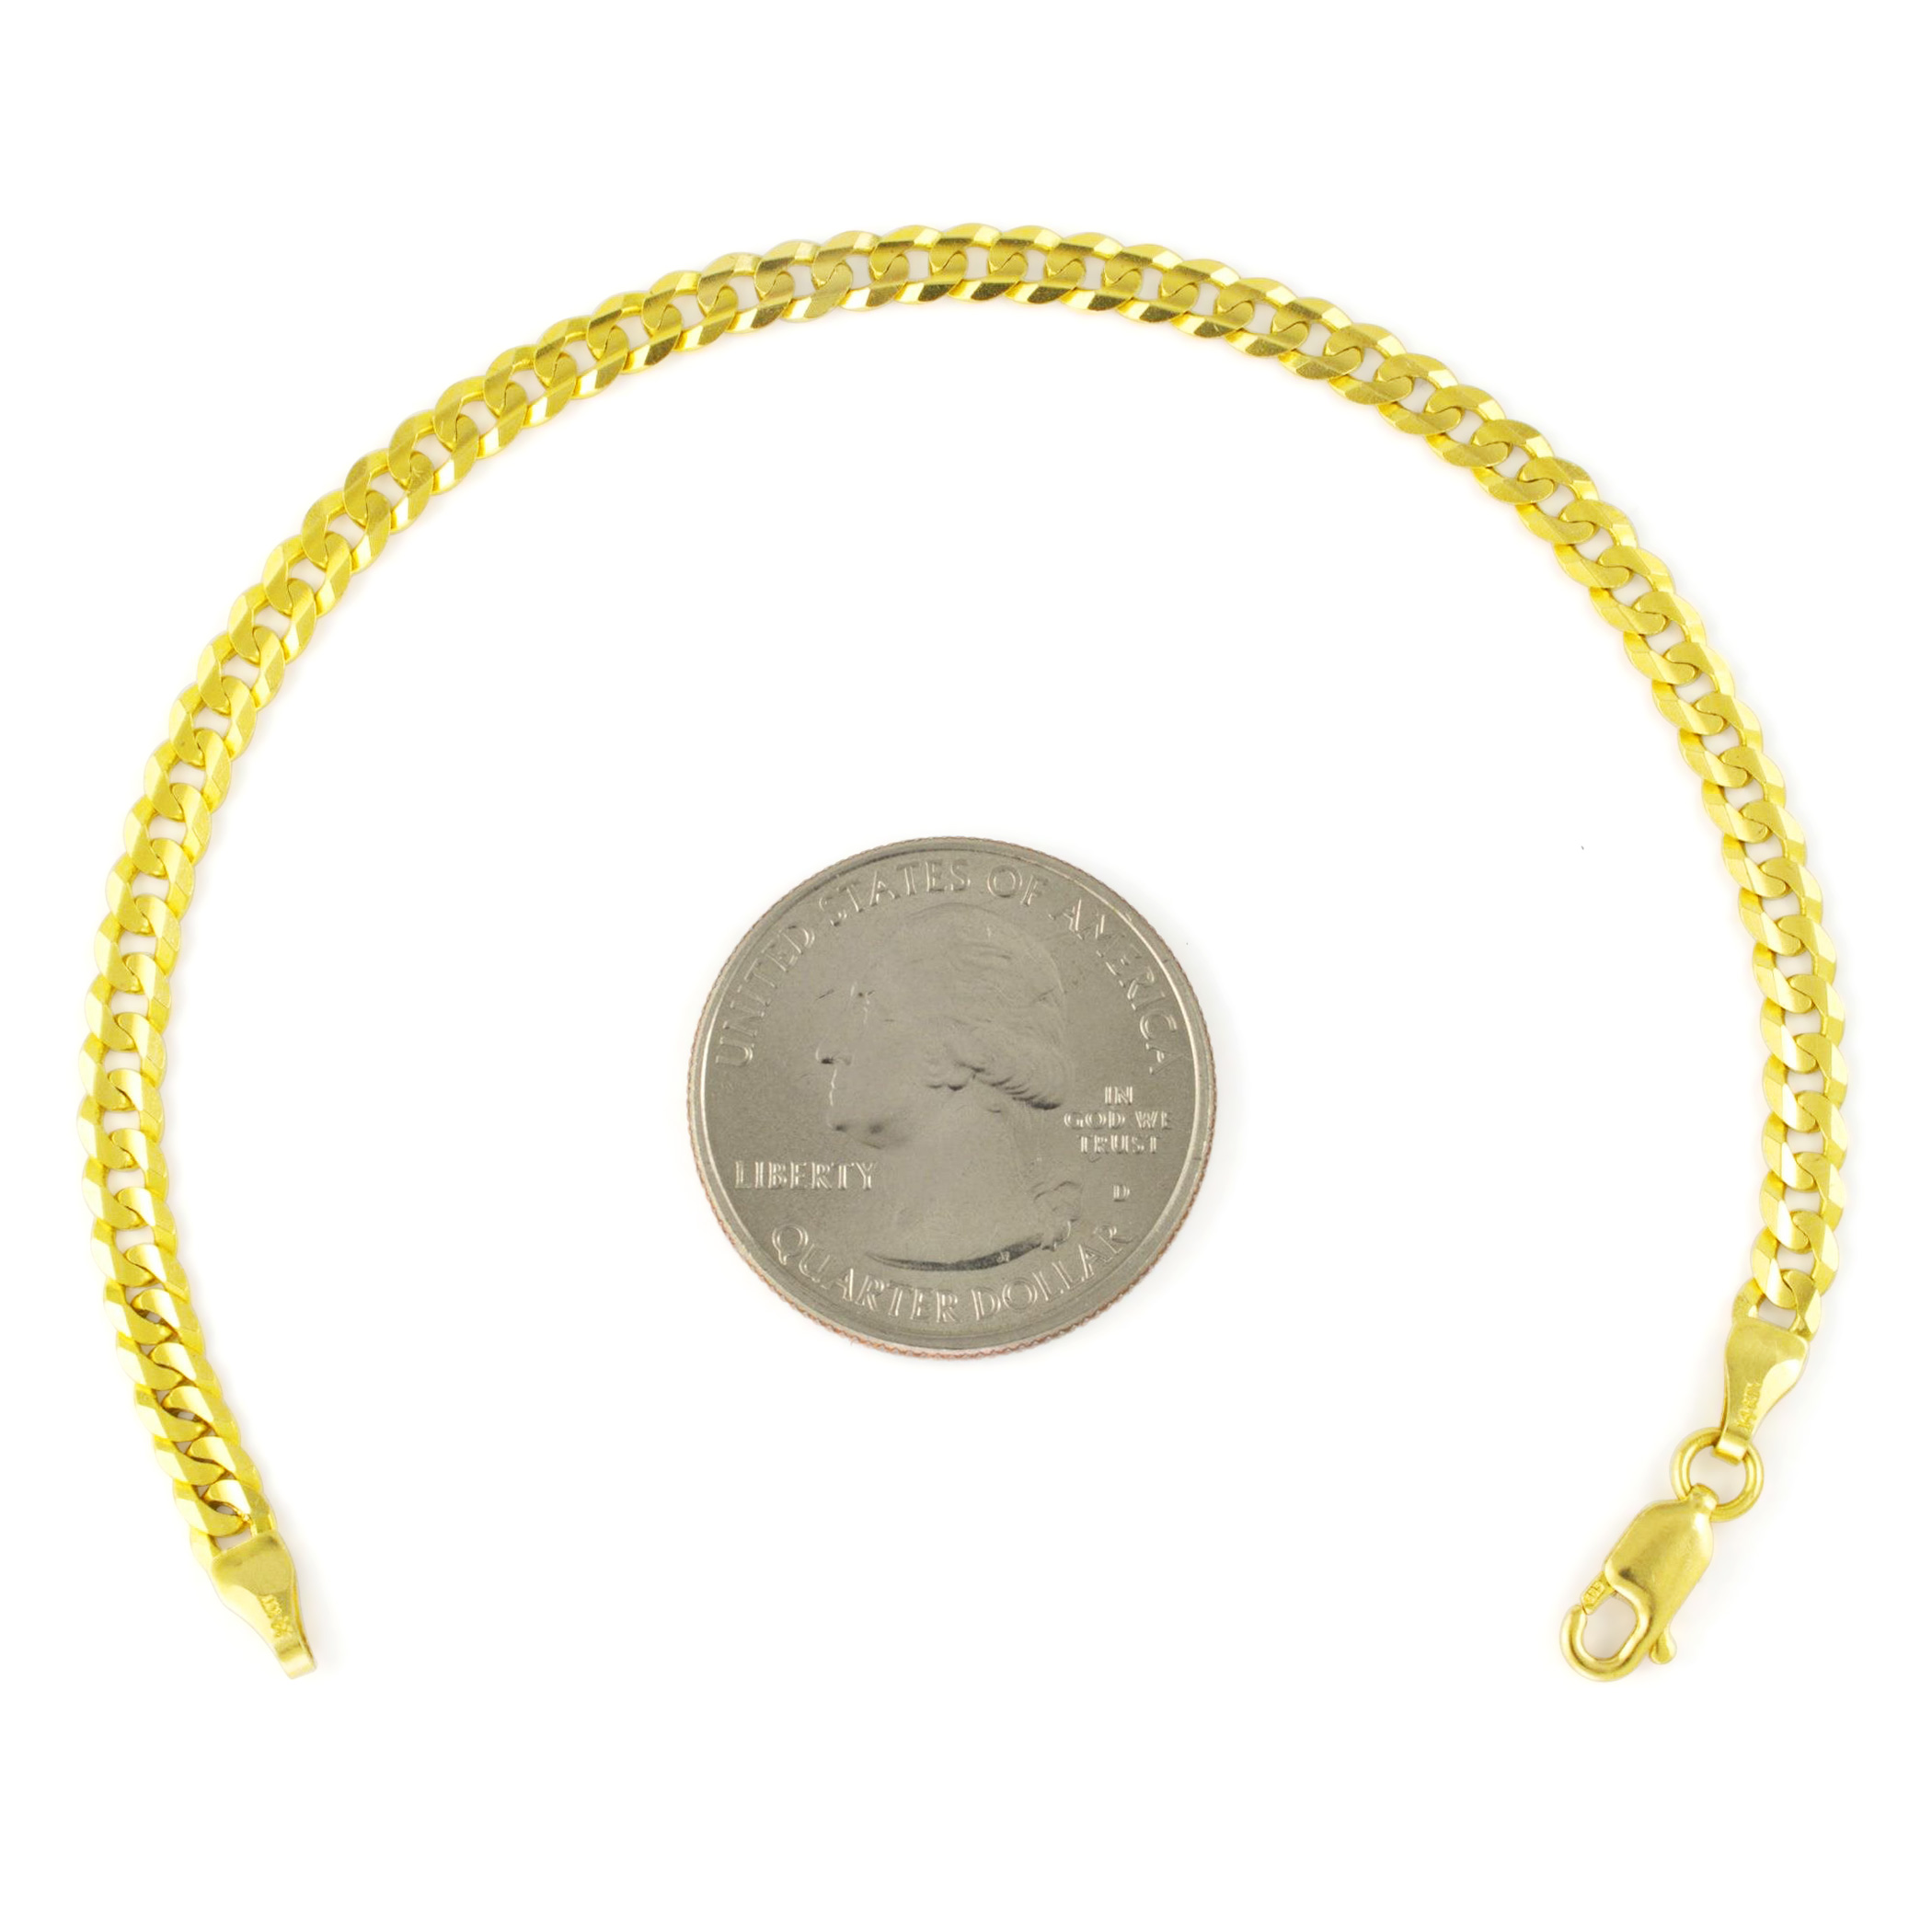 14K-Solid-Yellow-Gold-4mm-Cuban-Curb-Chain-Link-Bracelet-Lobster-Clasp-7-034-8-034-9-034 thumbnail 15